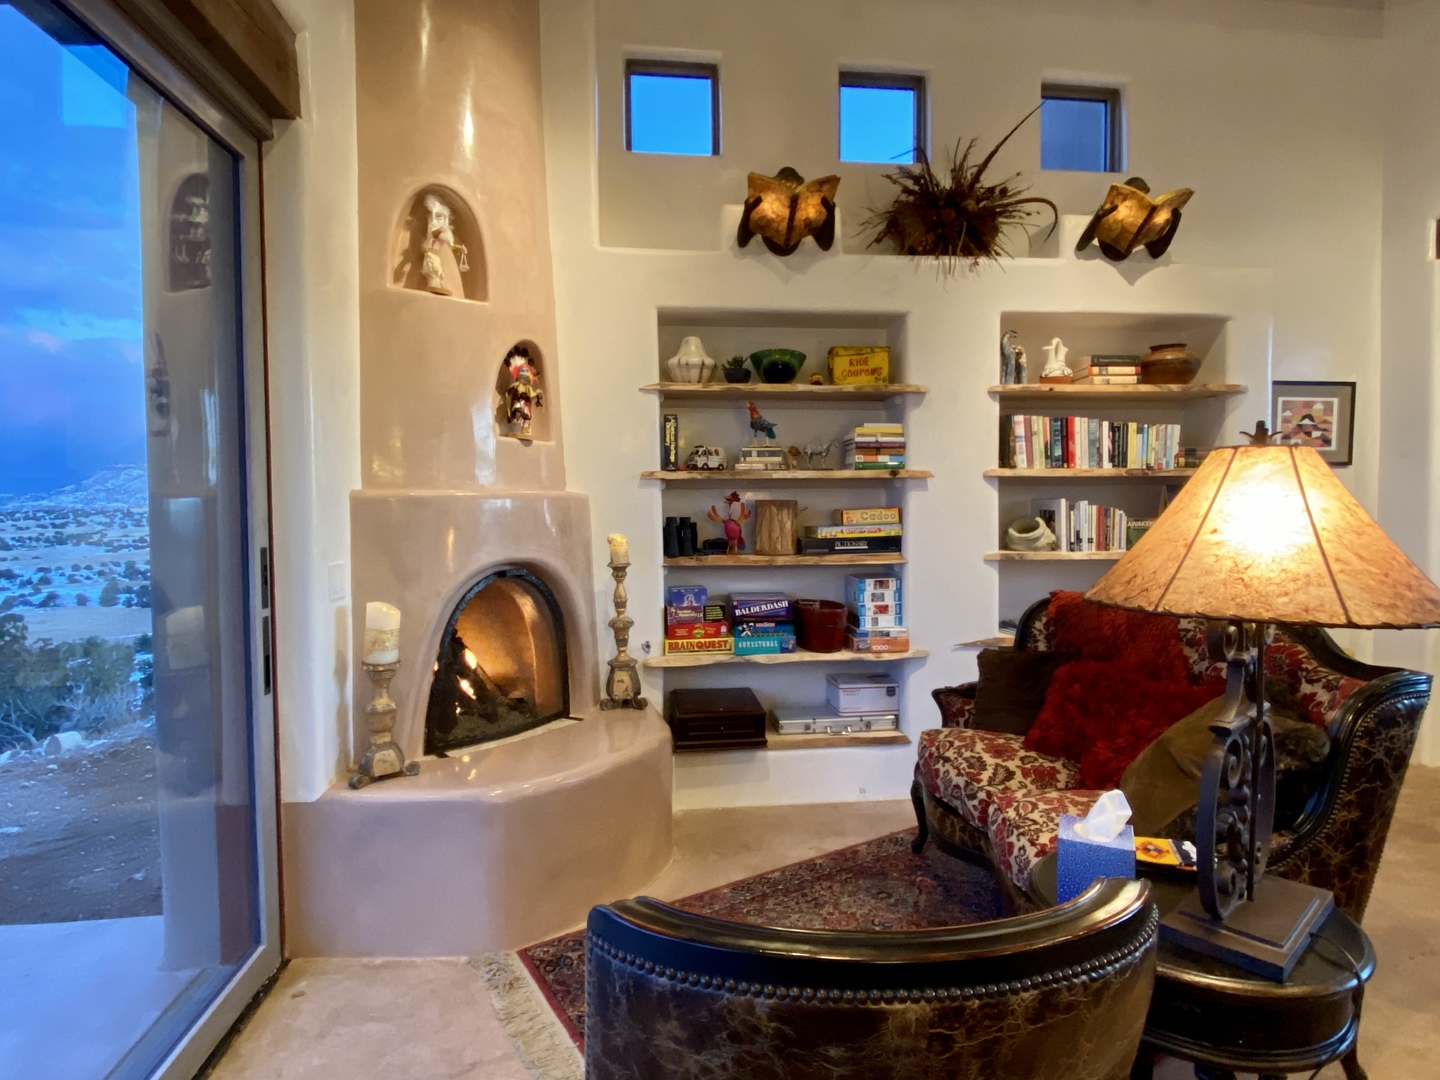 A room filled with furniture and a fireplace at Abiquiu Lake: The Grand Hacienda B&B.